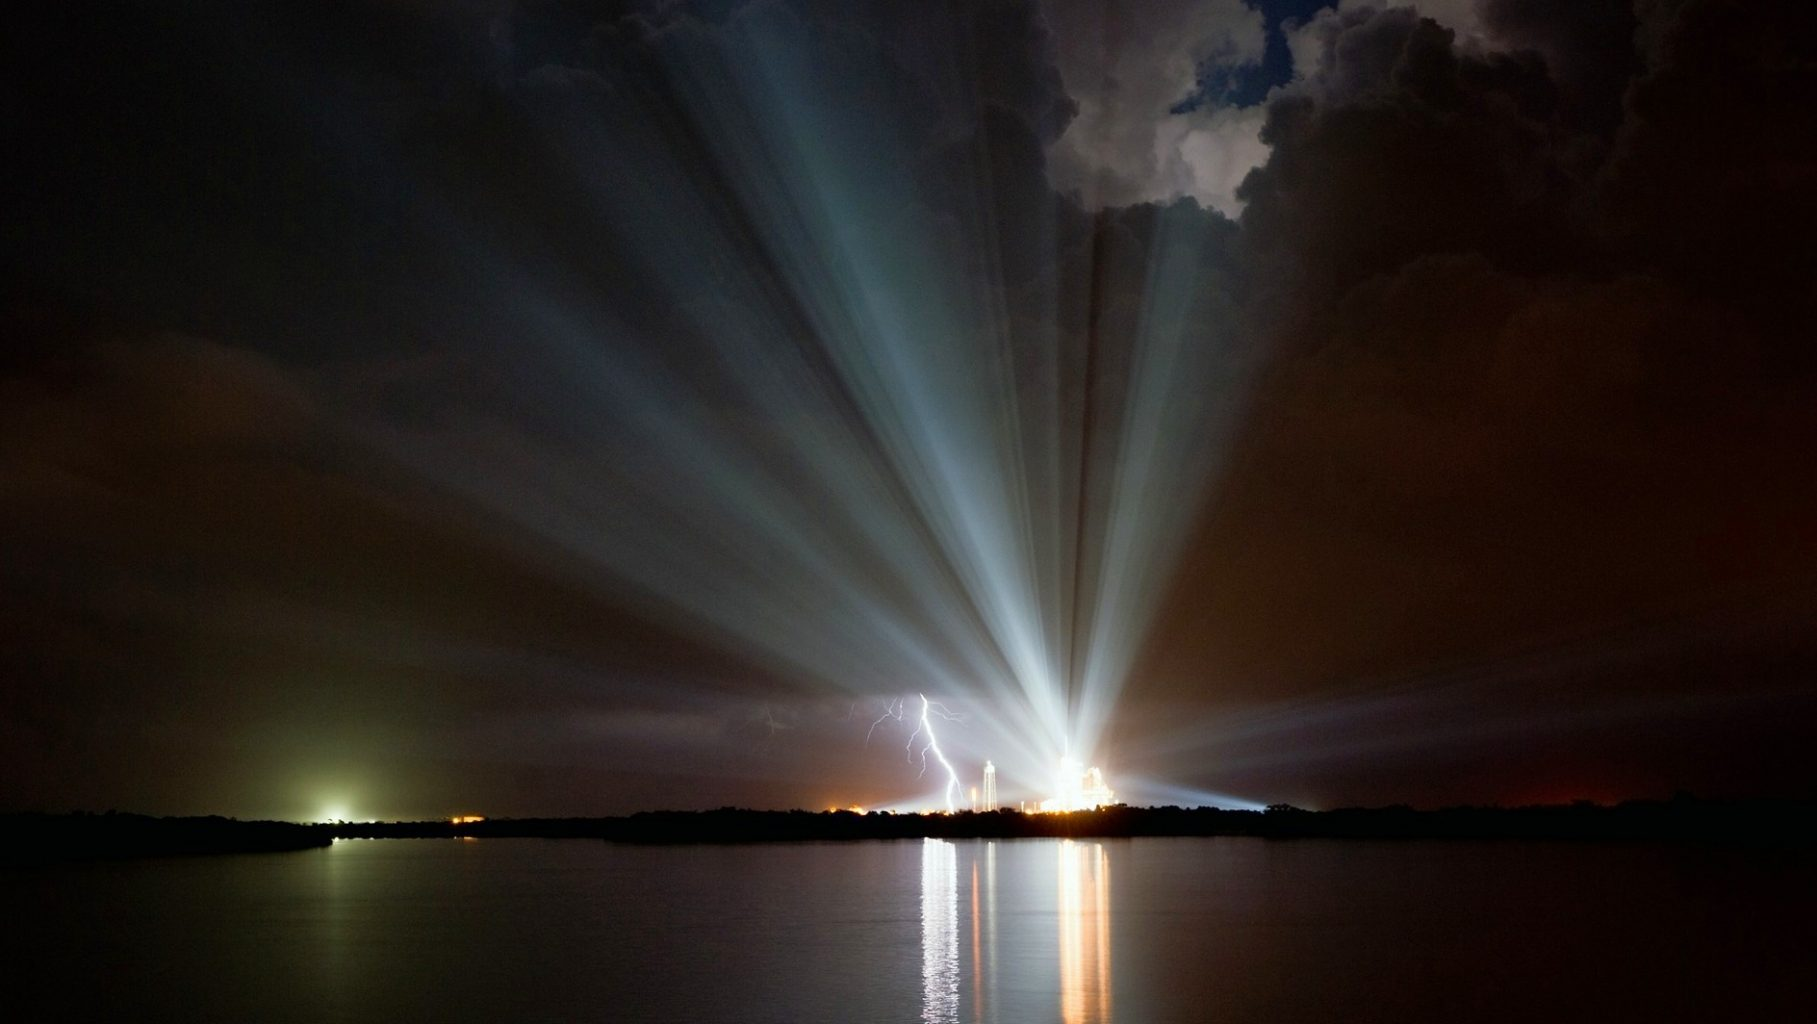 Image: A night time view of the lights radiating outward from the space shuttle launch